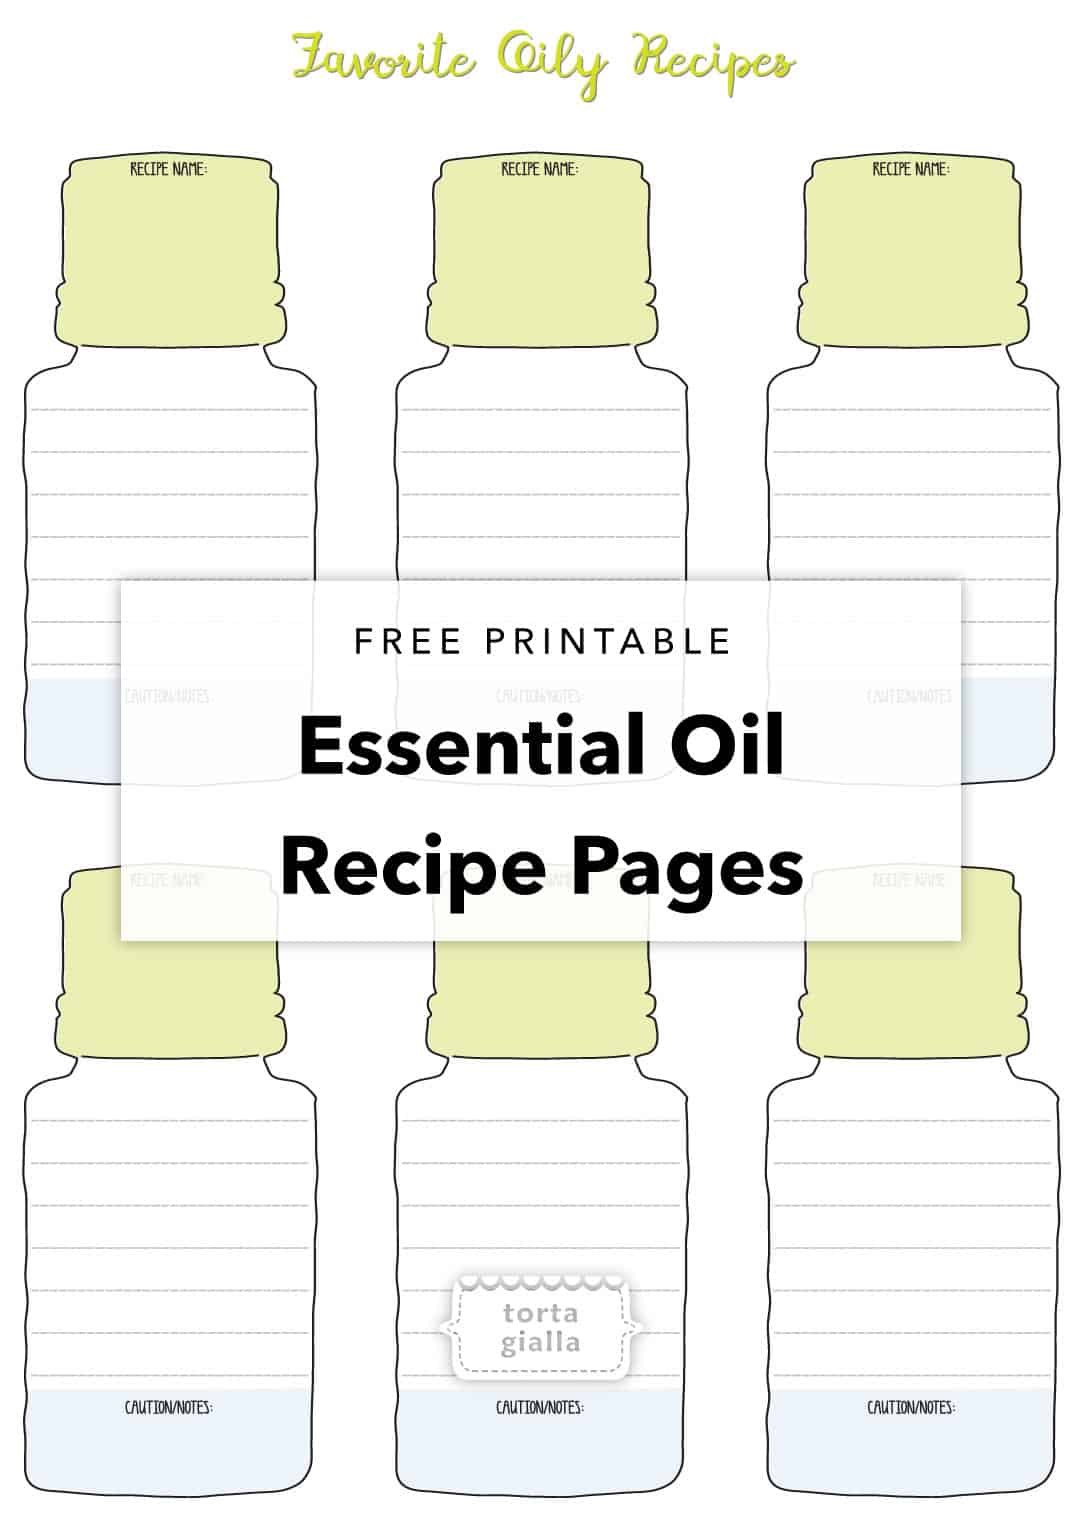 picture about Printable Recipe Pages known as No cost Printable - Necessary Oil Recipe Webpages tortagialla